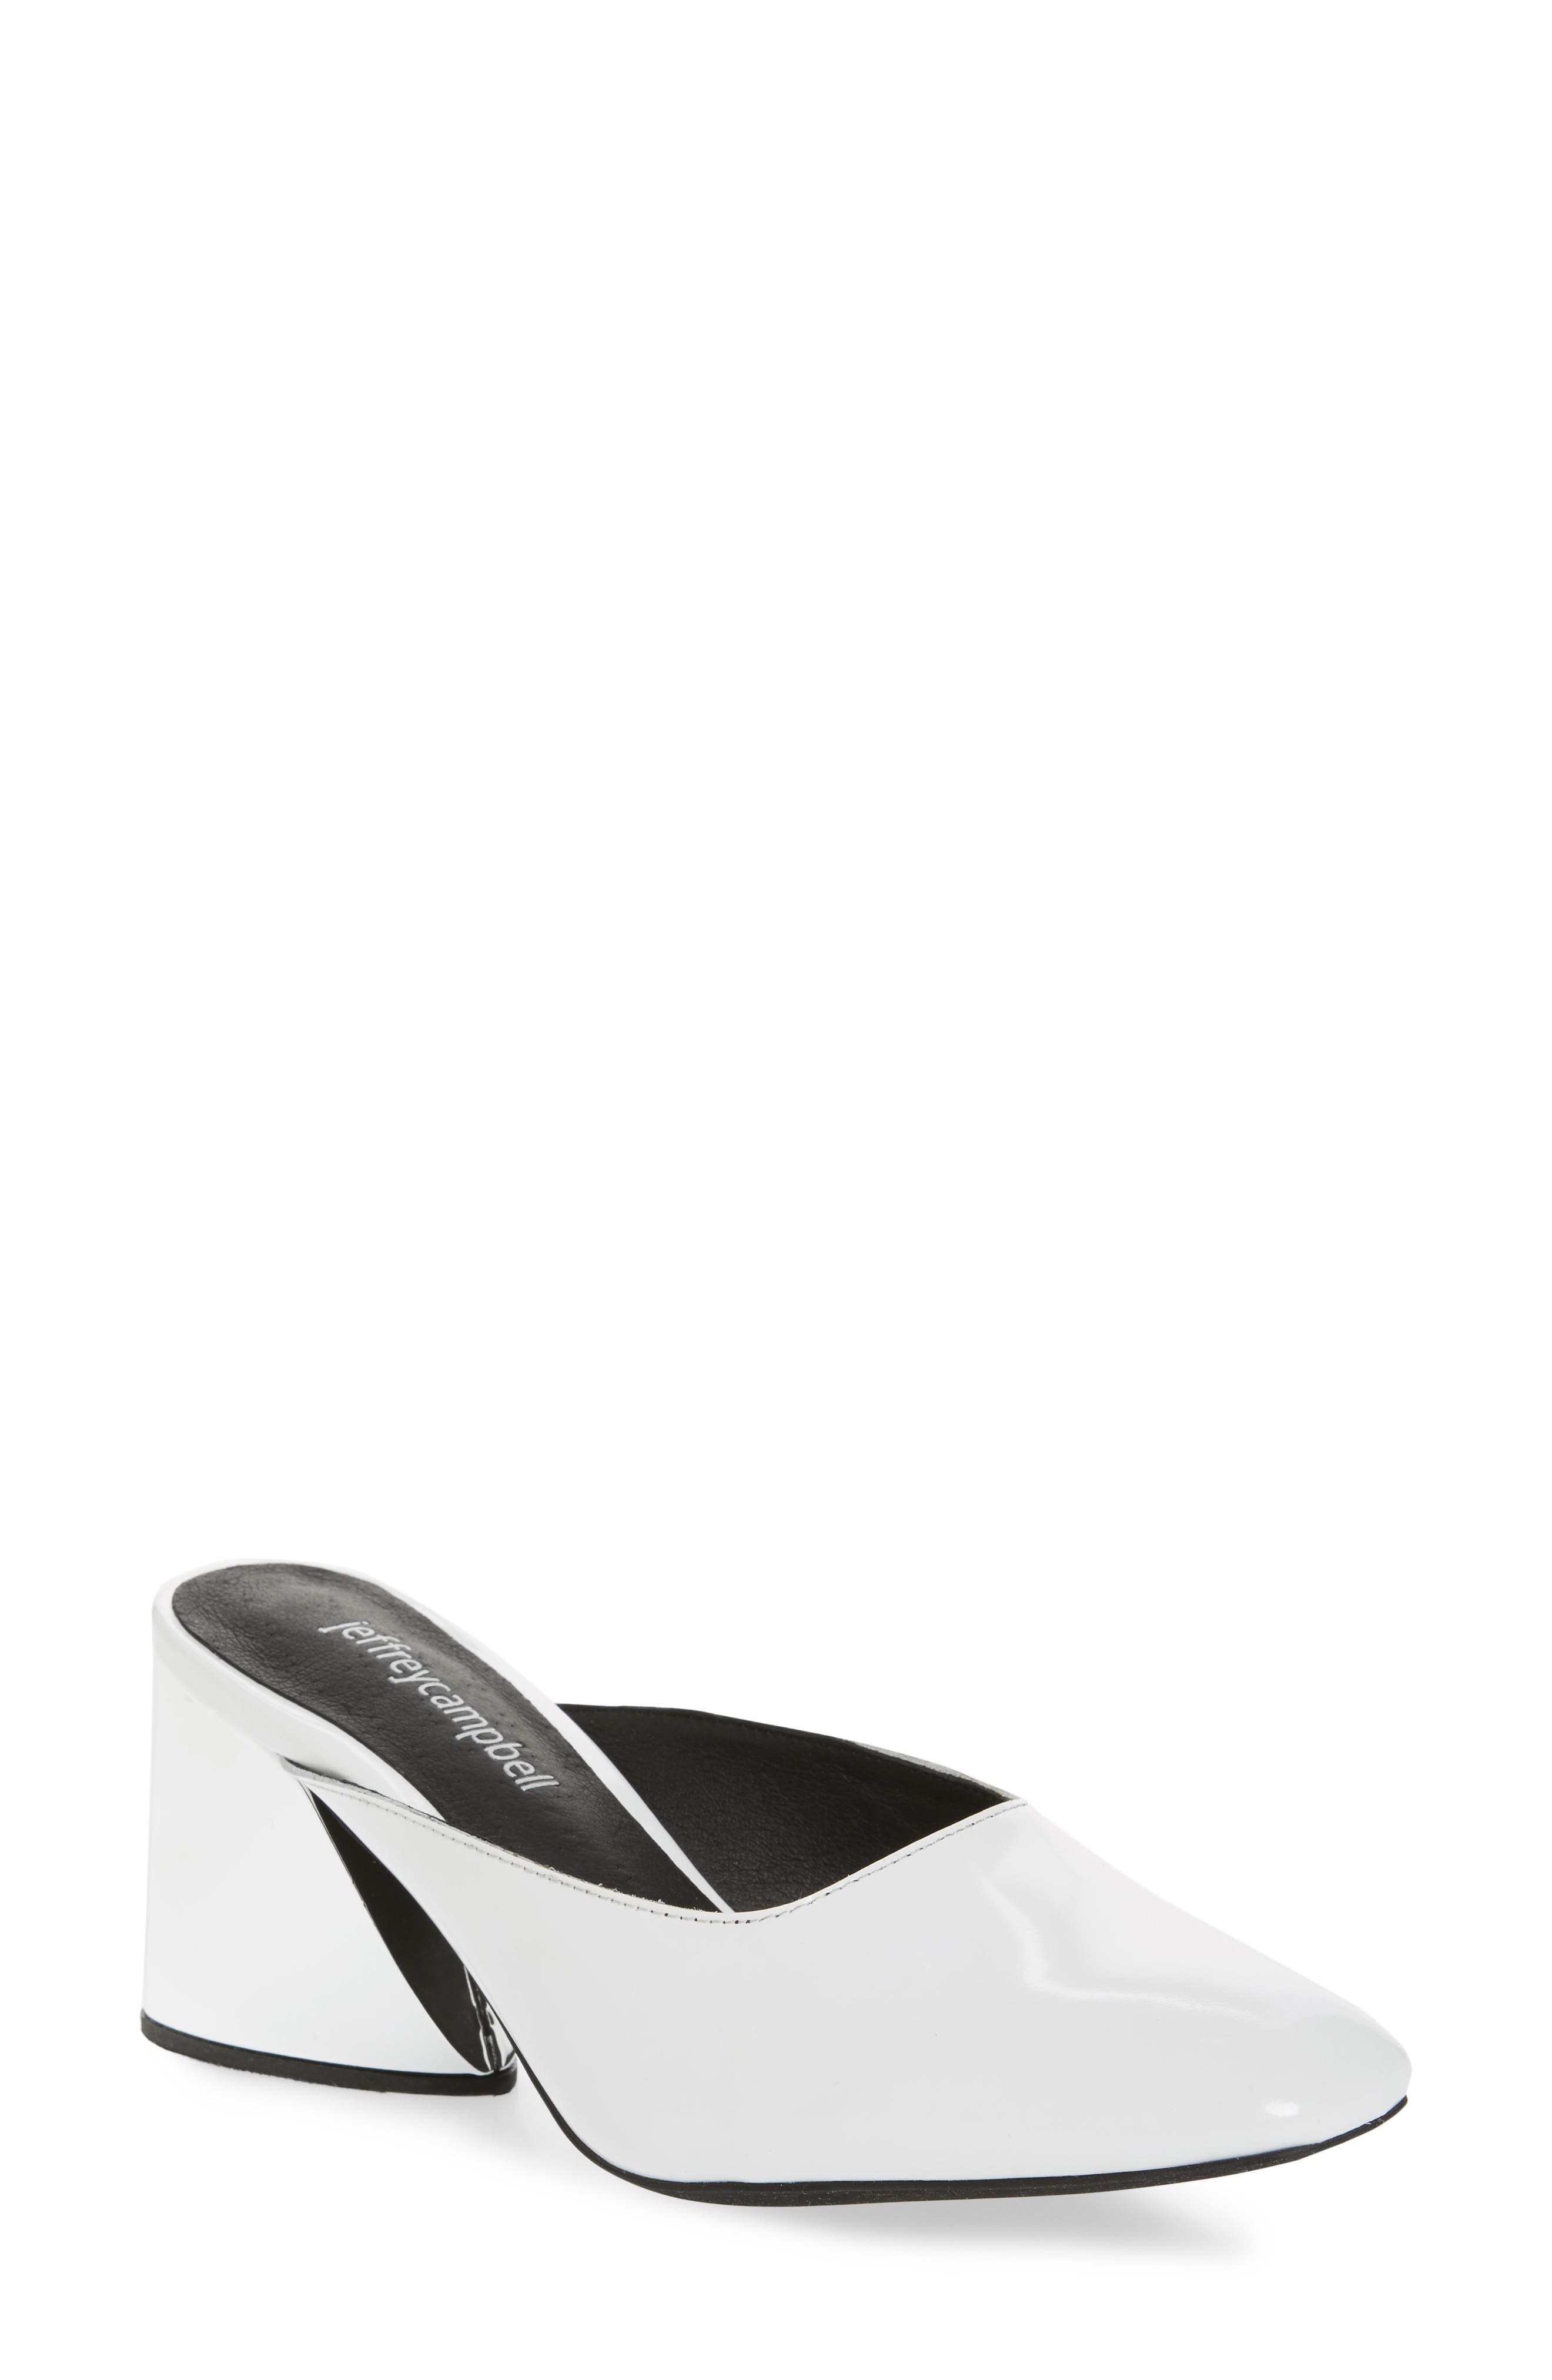 Lamer Flared Heel Mule,                             Main thumbnail 1, color,                             White/ Silver Leather